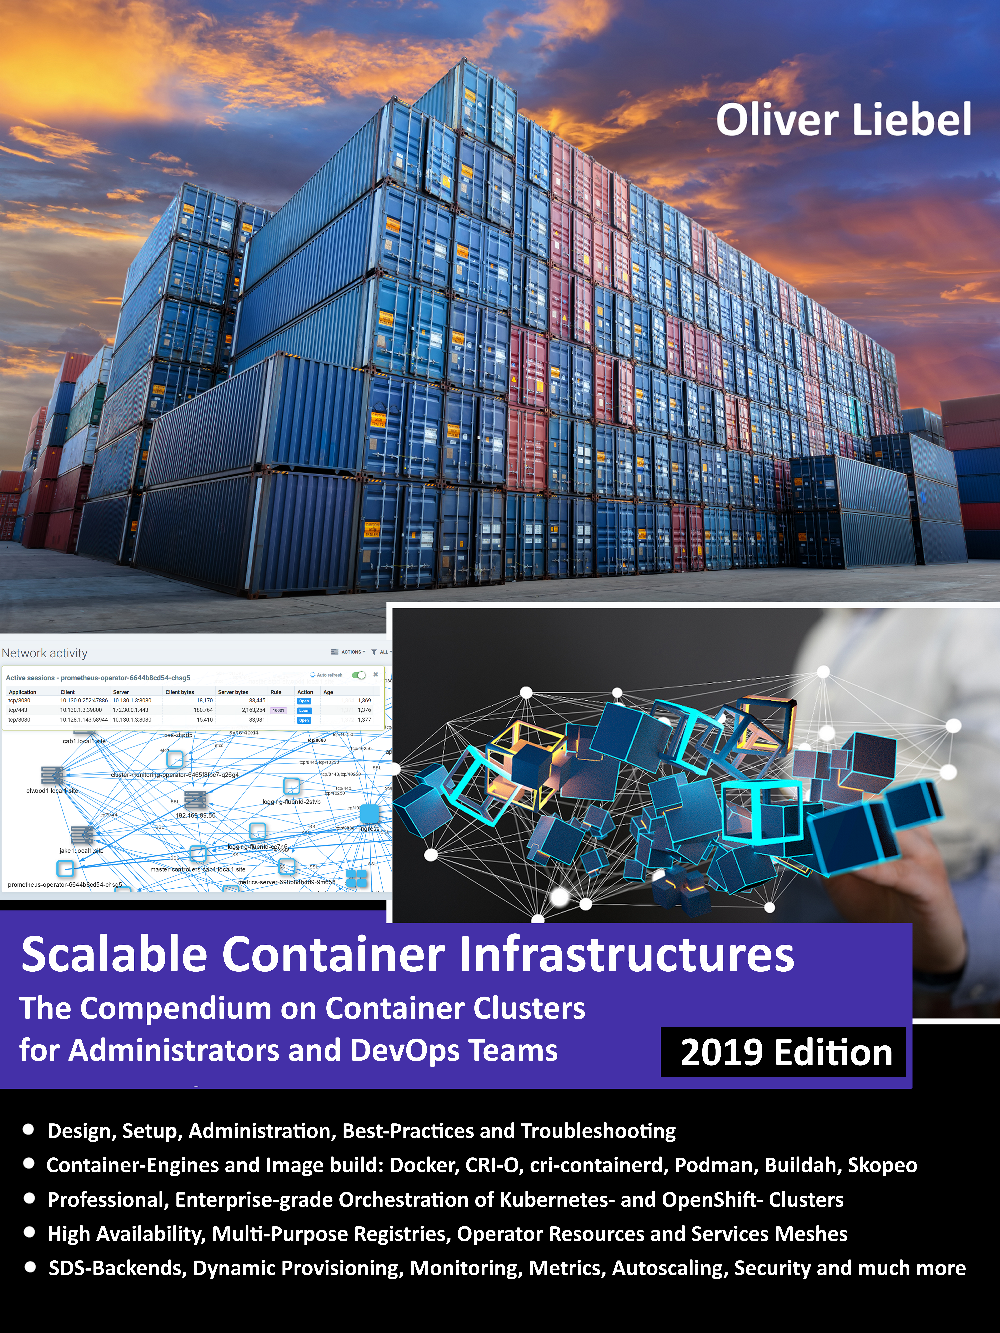 Scalable Container Infrastructures Edition 2019